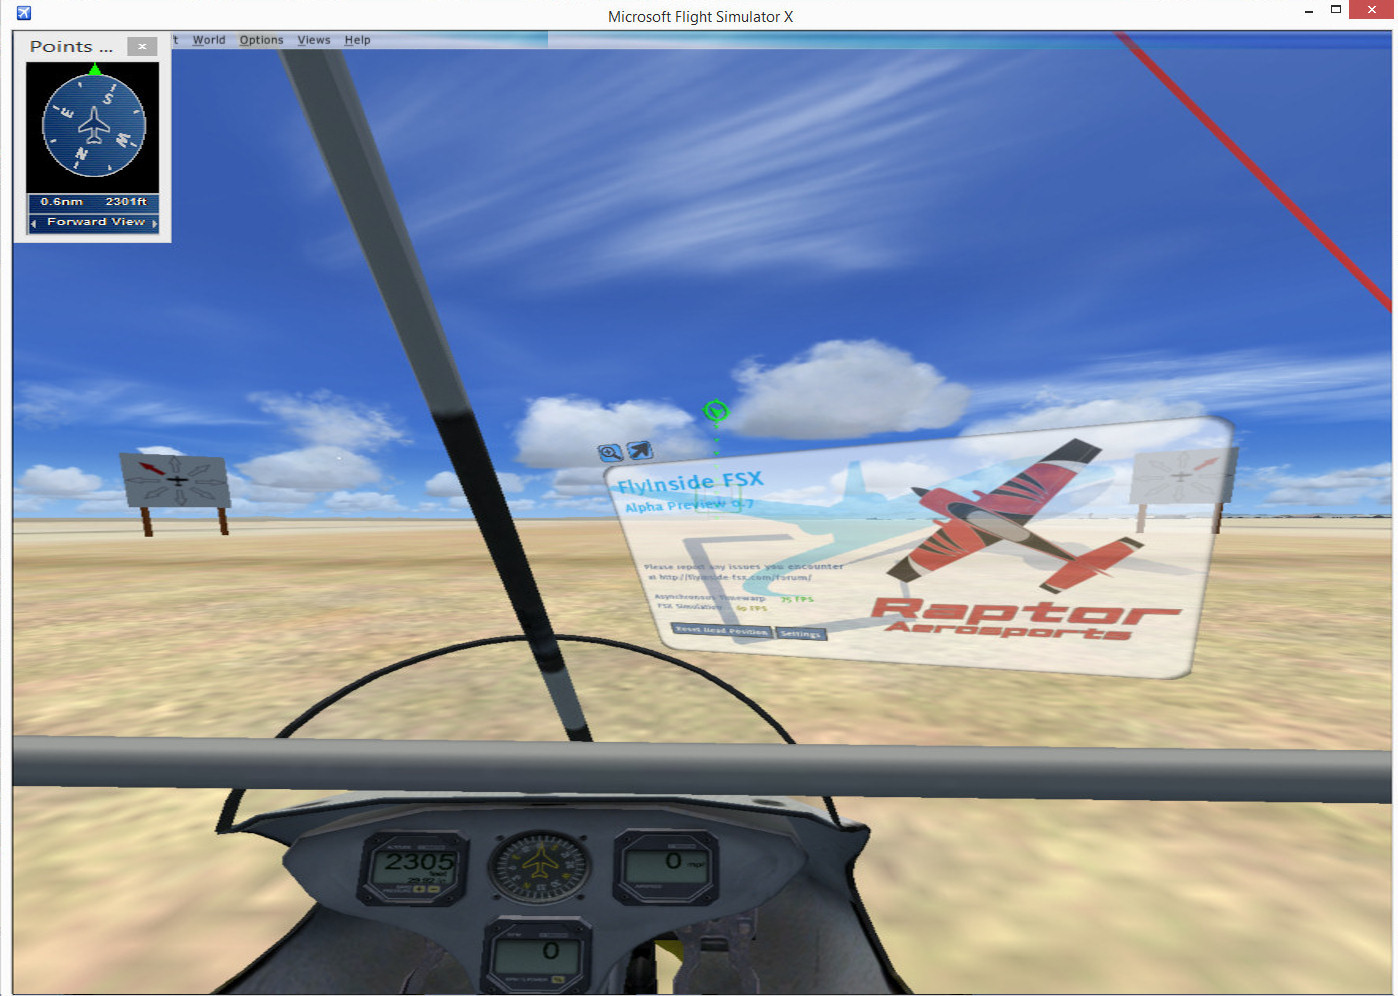 Using vorpX for Oculus Rift with FSX | Austin Tate's Blog